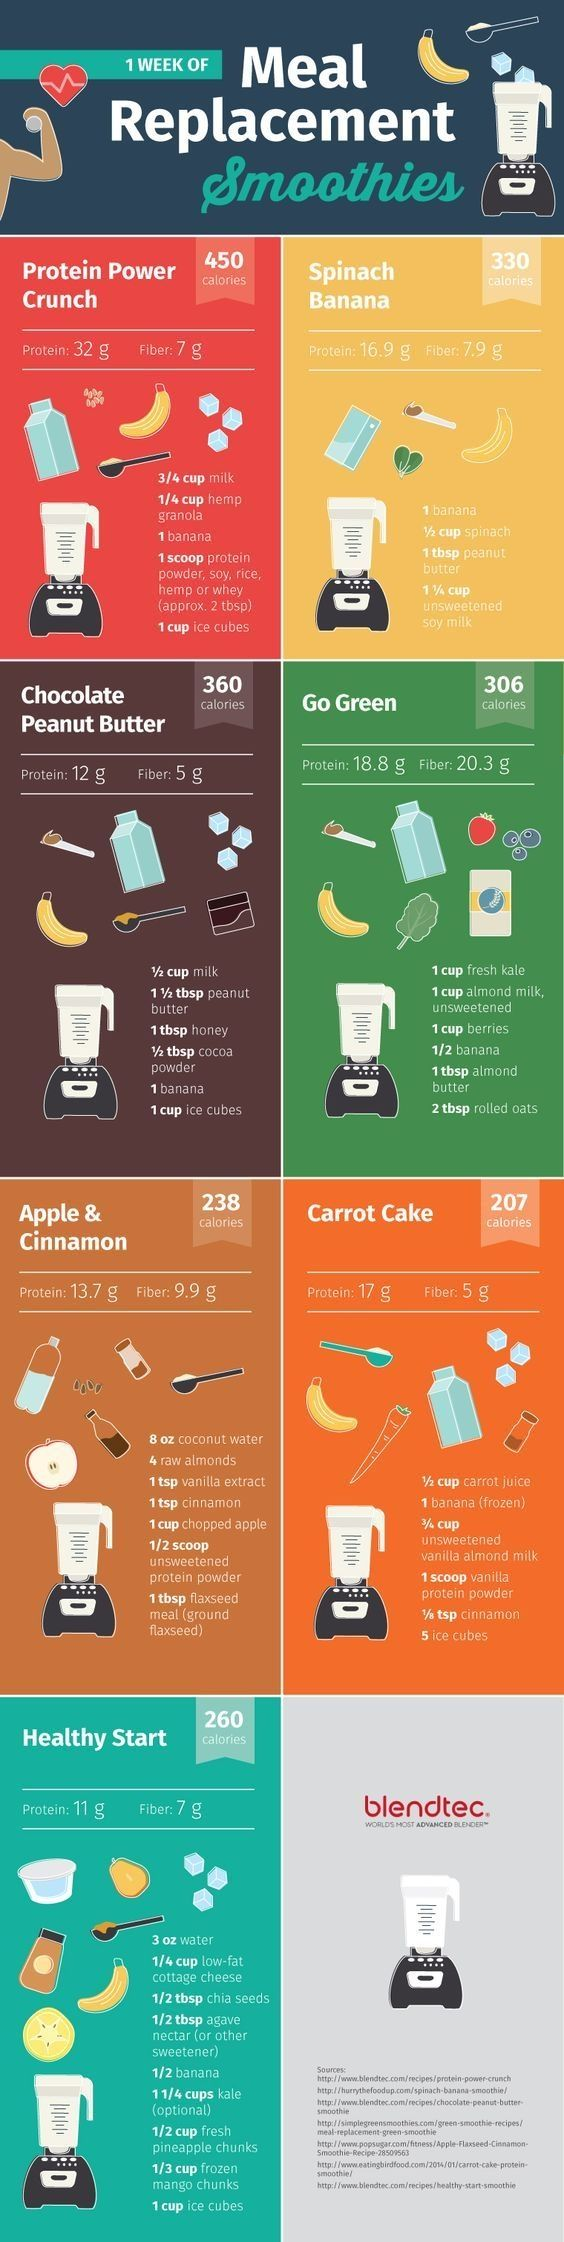 Whether you need to lose five pounds, 50 pounds, 100 pounds or more, know that it can be done. Though many struggle with the process, simply : Vitamix can do it even better! See details at http://howtoloseweightfaster.siterubix.com/best-blender-is-vitamix/ #weightlosstips